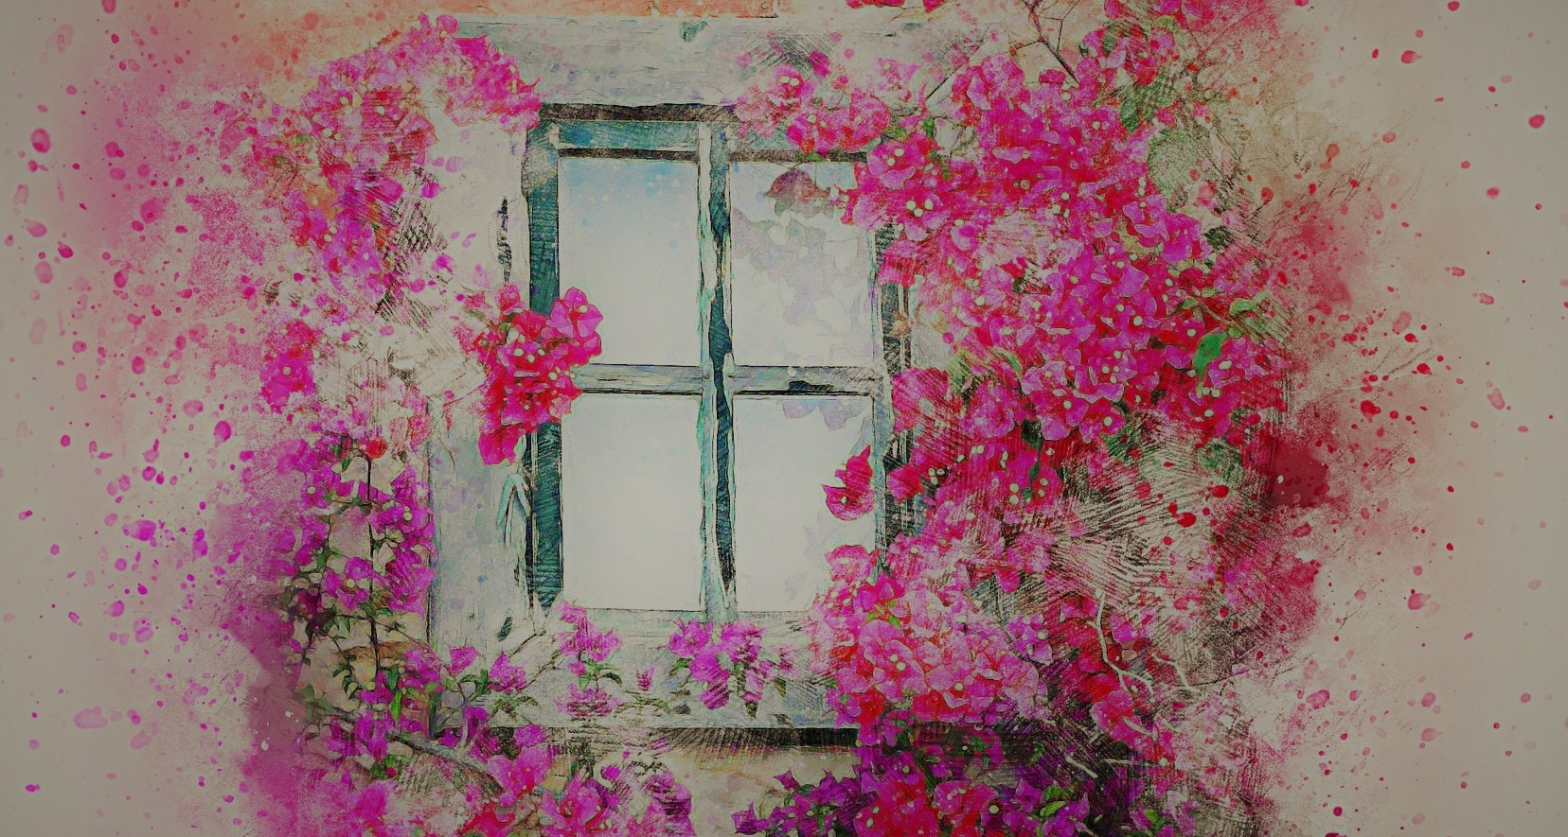 Poem A painting of a window wreathed in playful pink and purple flowers with a white backdrop of splashes of pink and orange paint